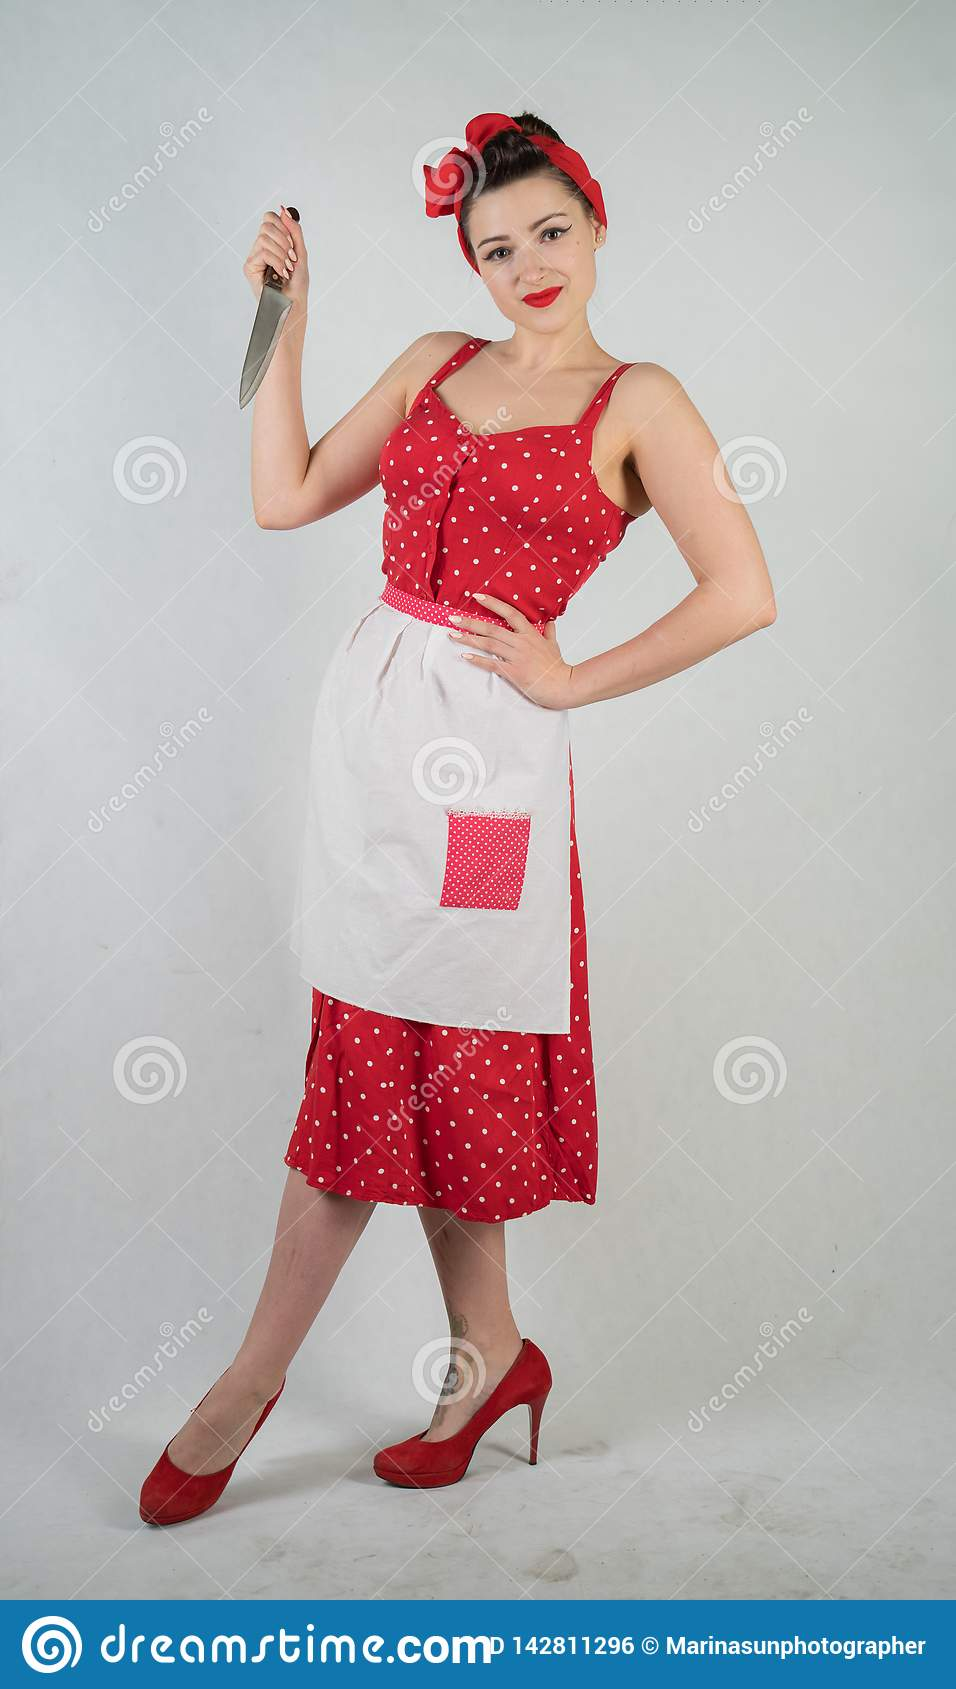 Dangerous pin up girl housewife in red vintage polka dot dress stands with a huge kitchen knife in her hands and angrily rejoices